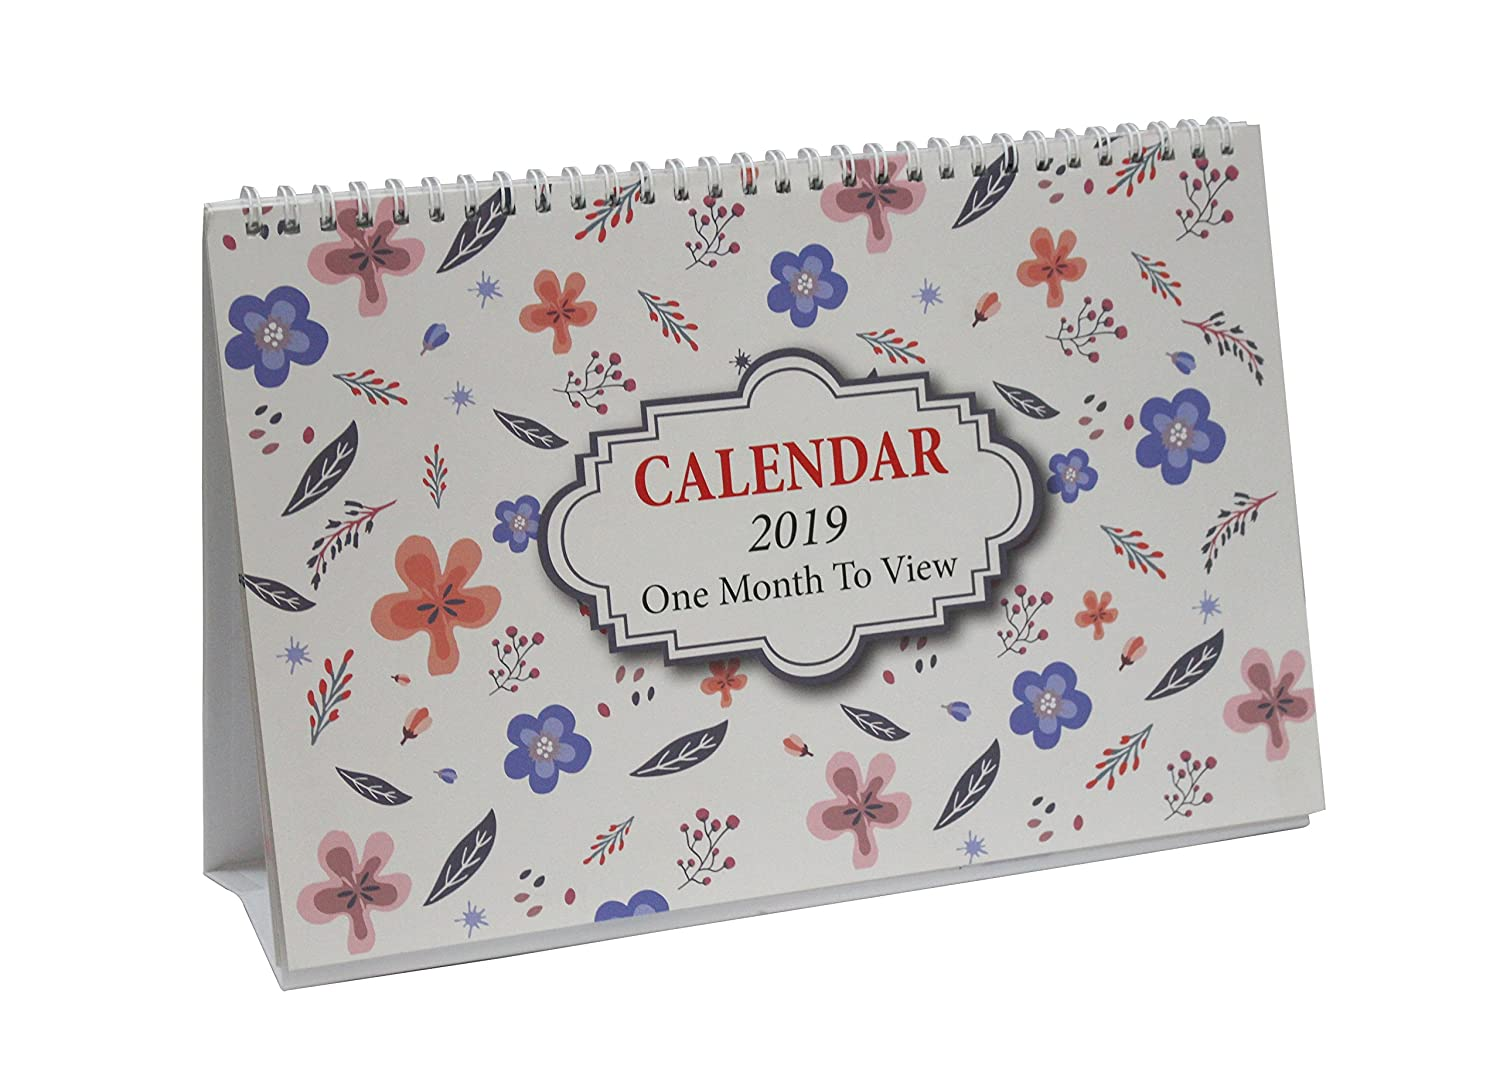 2018-2019 One Month To View UK Stand Alone Desk Office Table Calendar, Academic mid-year or school year planner, Starts 1st -August 2018 runs 'til December 2019,Floral Leaf Design By Arpan